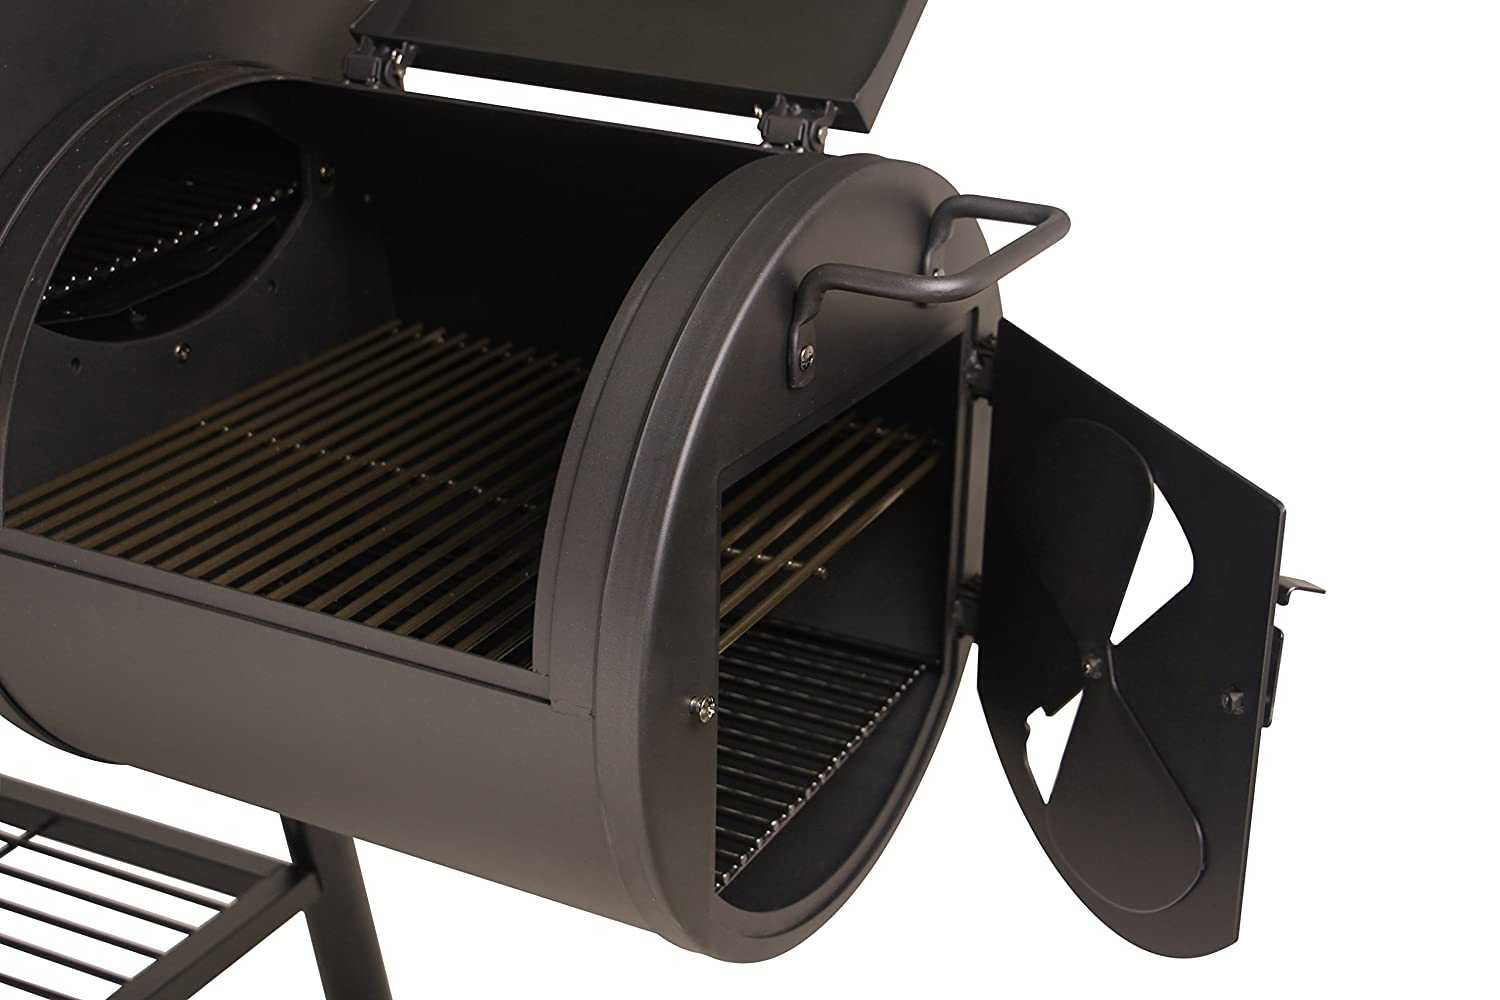 90 kg Grill Smoker Test